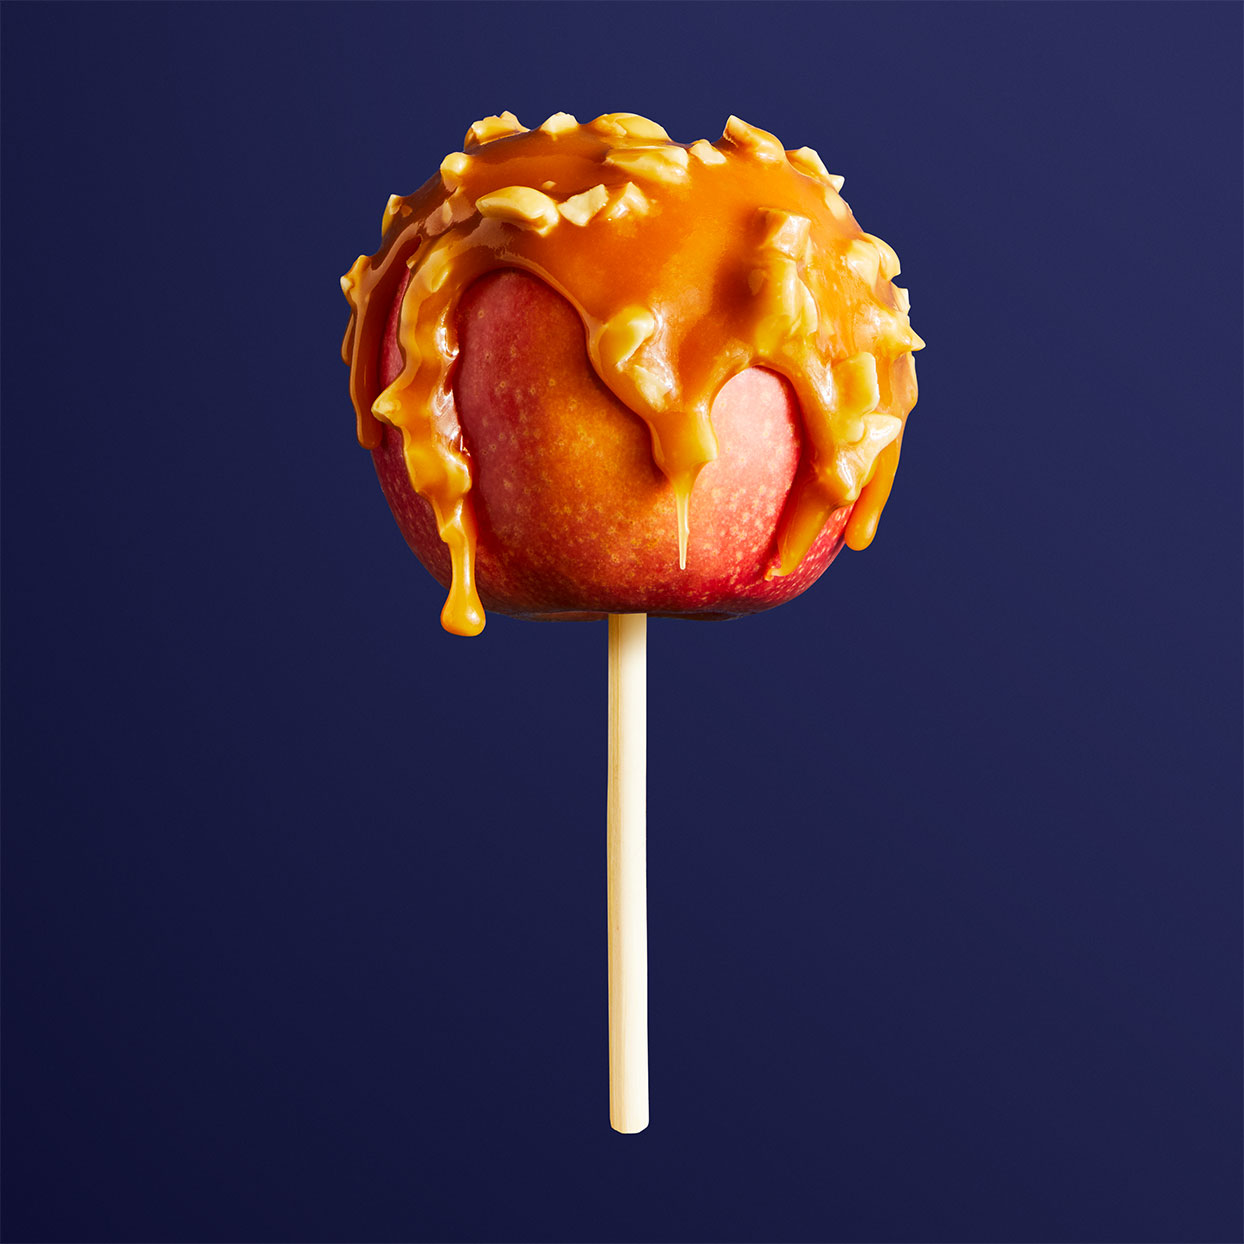 caramel apple on a stick against a dark blue background